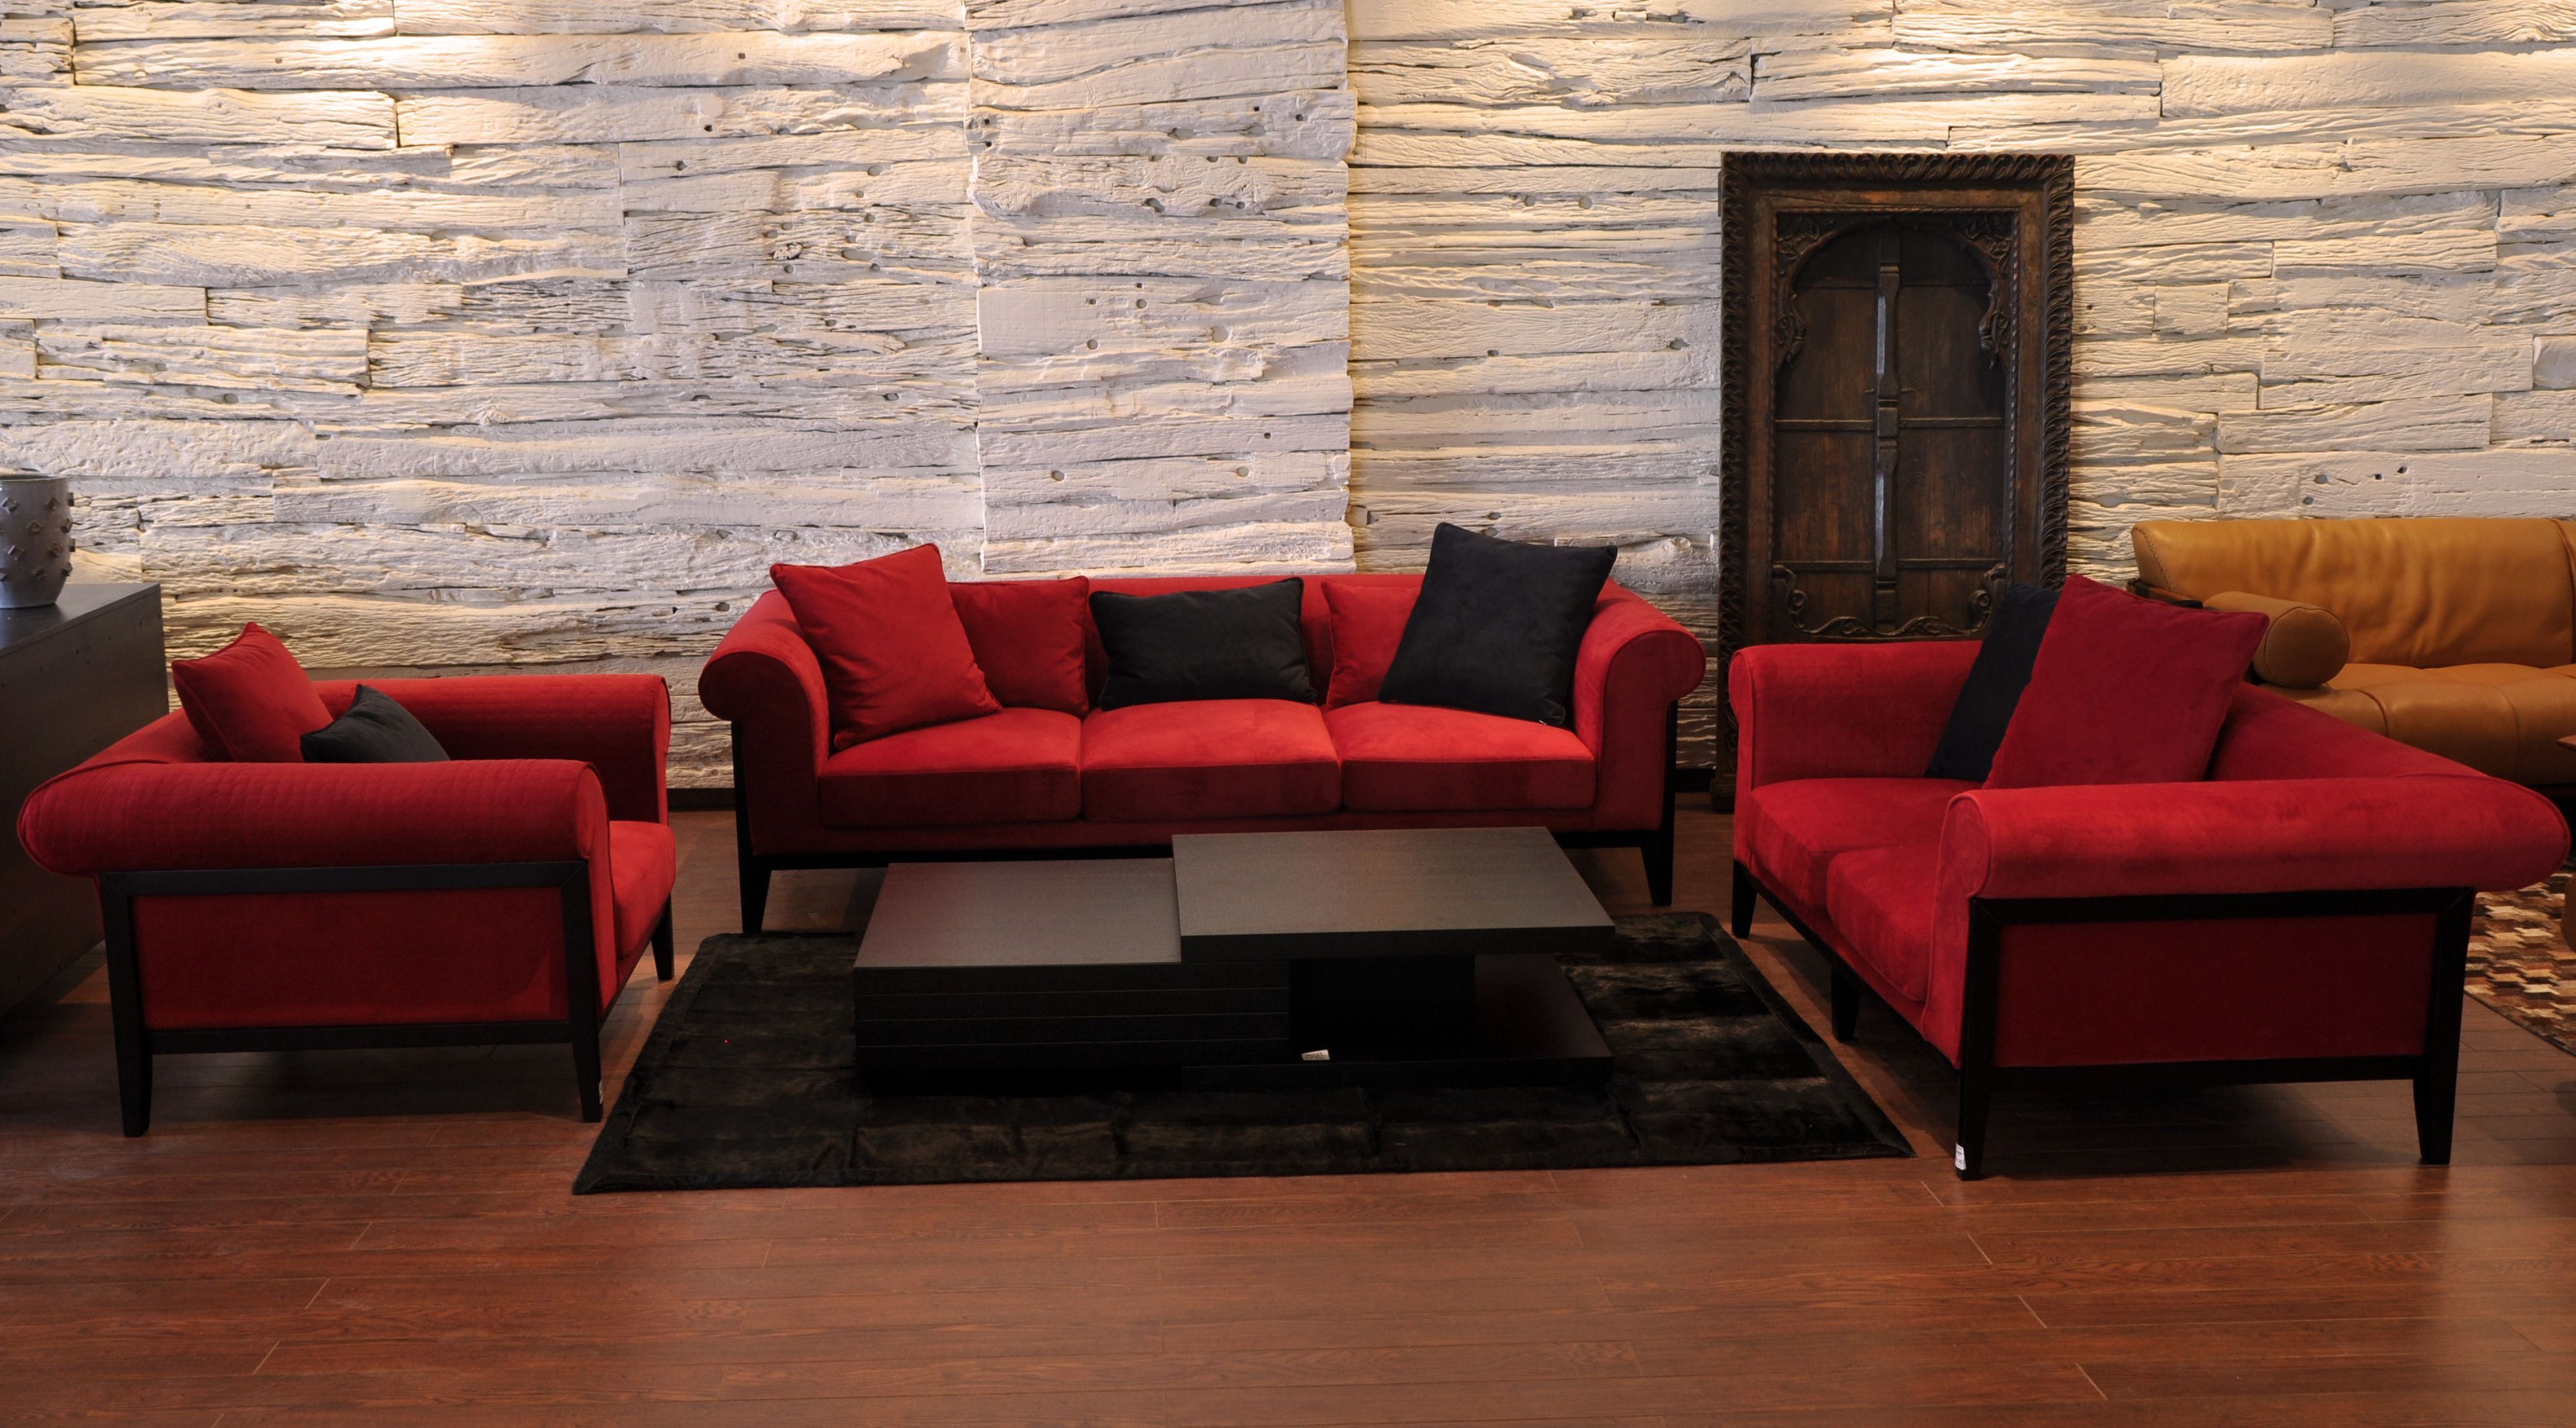 MIMOSA SOFA With its simple classic design this sofa brings a